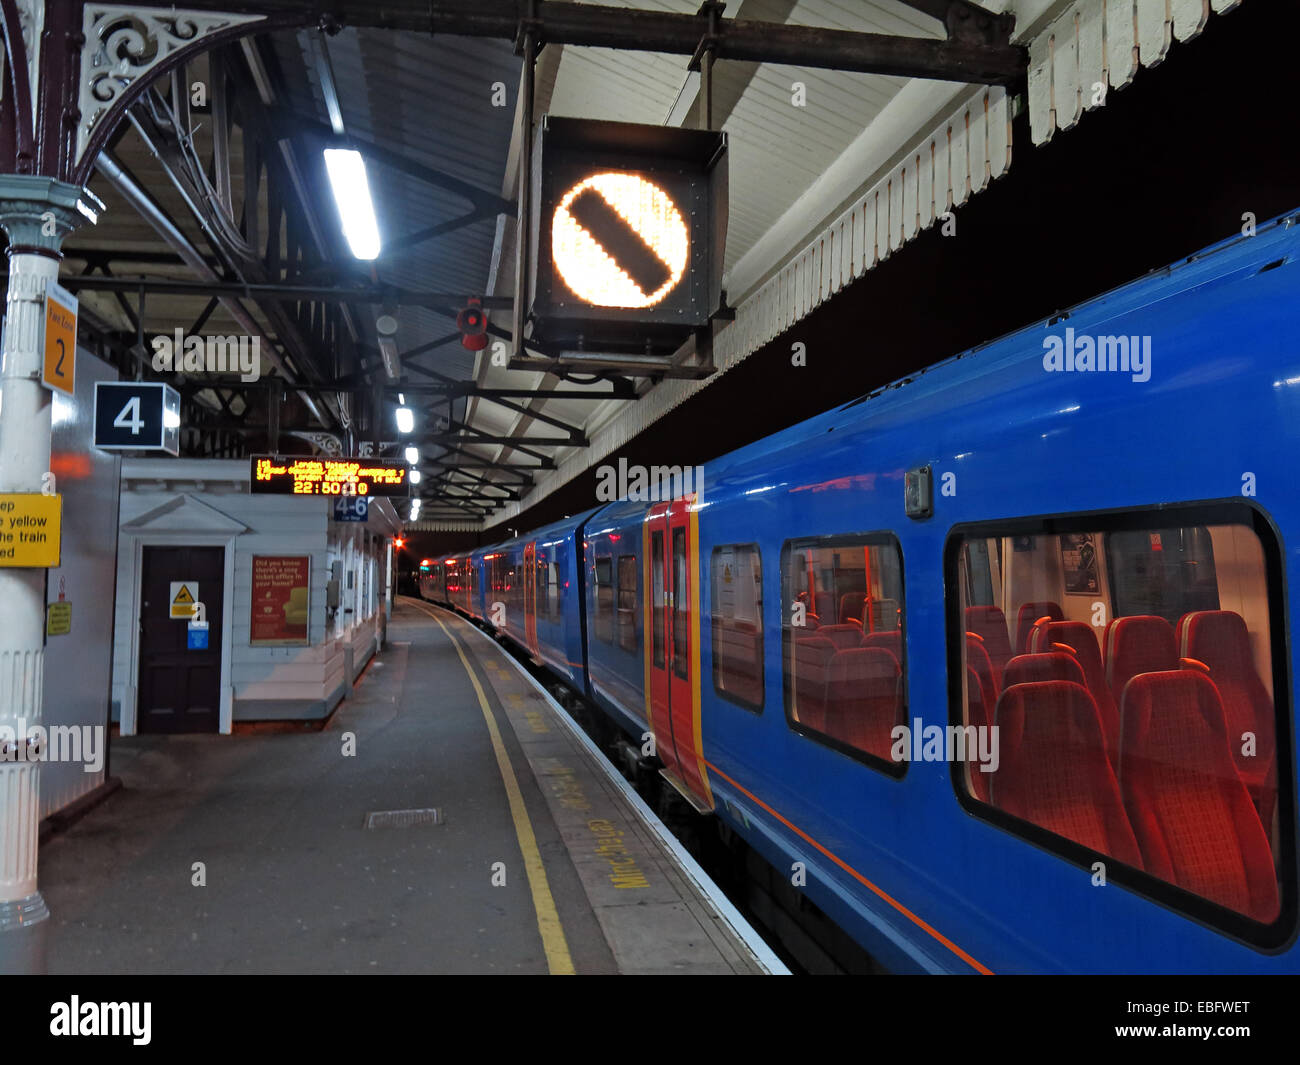 SW Trains EMU at Clapham Junction Railway Station at night, on platform 4 - Stock Image